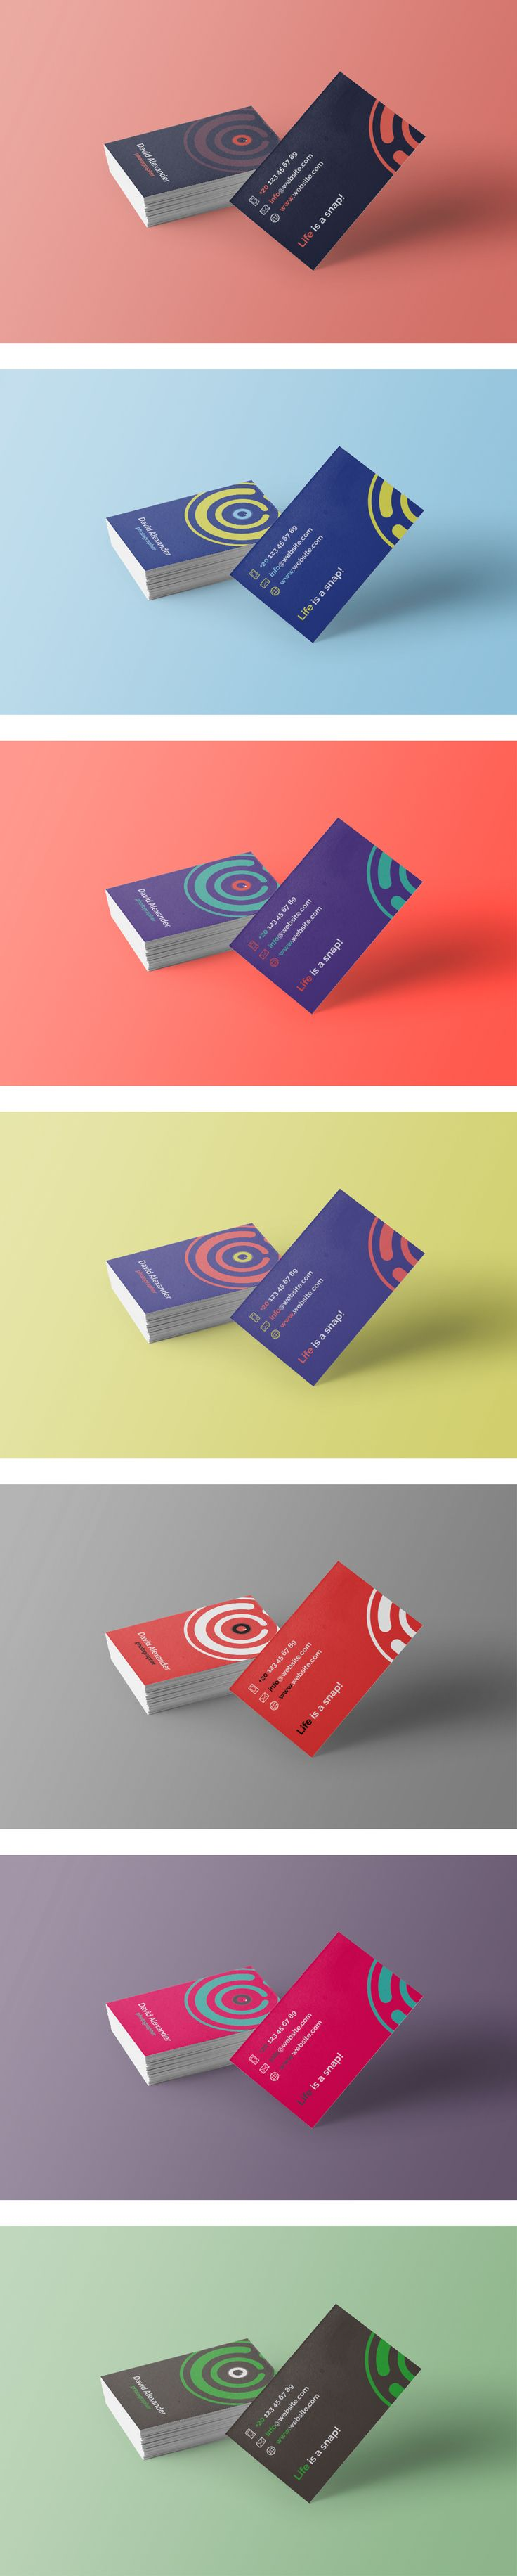 Perfect for photographers! BUSINESS CARD PHOTOGRAPHER PHOTO BUSINESS CARD PHOTOGRAPHY MATERIAL BRAND BRAND IDENTITY BUSINESS CARD TEMPLATE